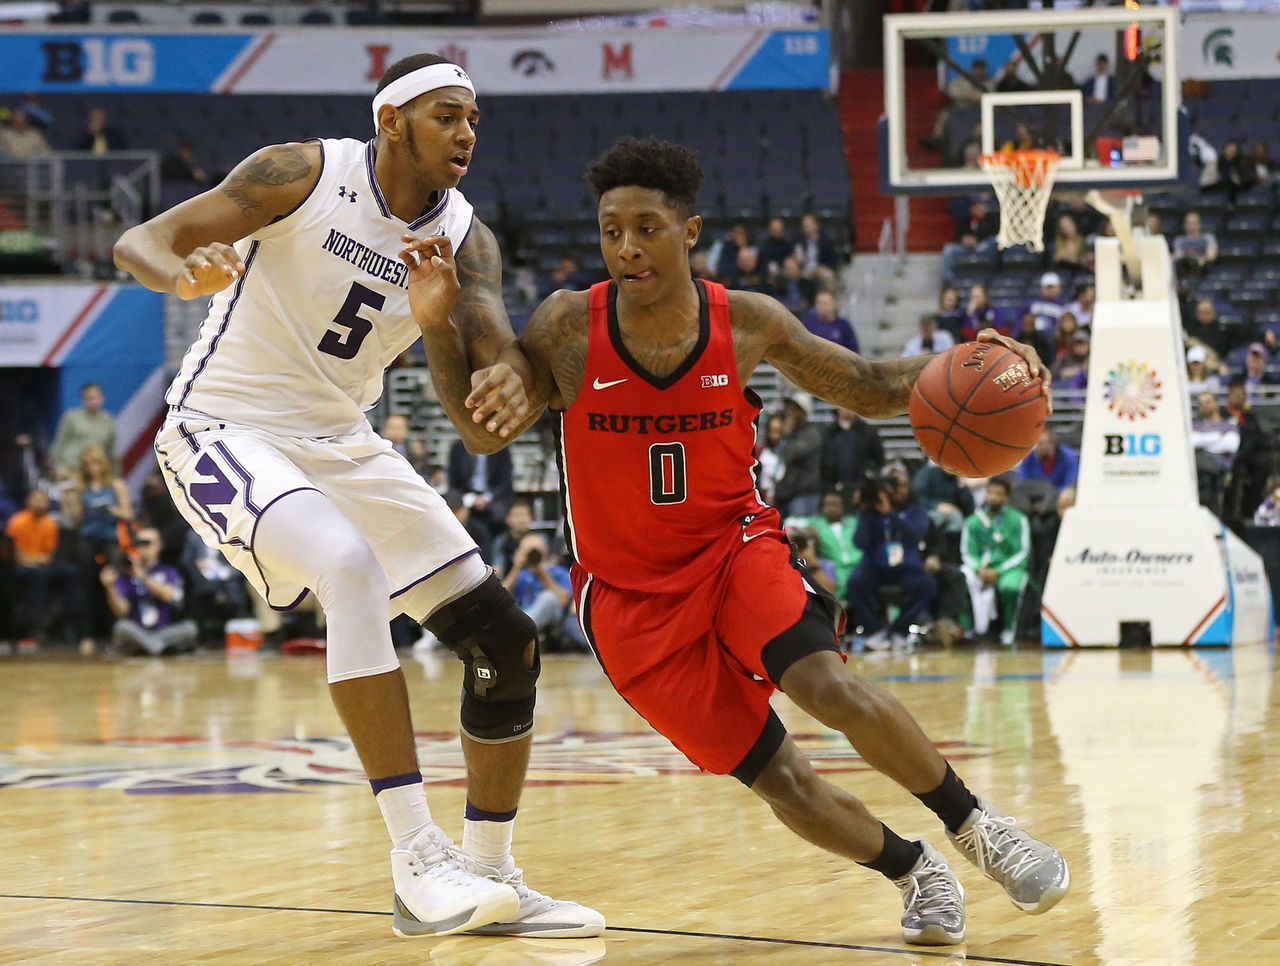 Cropped_2017-03-10t041721z_610240296_nocid_rtrmadp_3_ncaa-basketball-big-ten-conference-tournament-northwestern-vs-rutgers